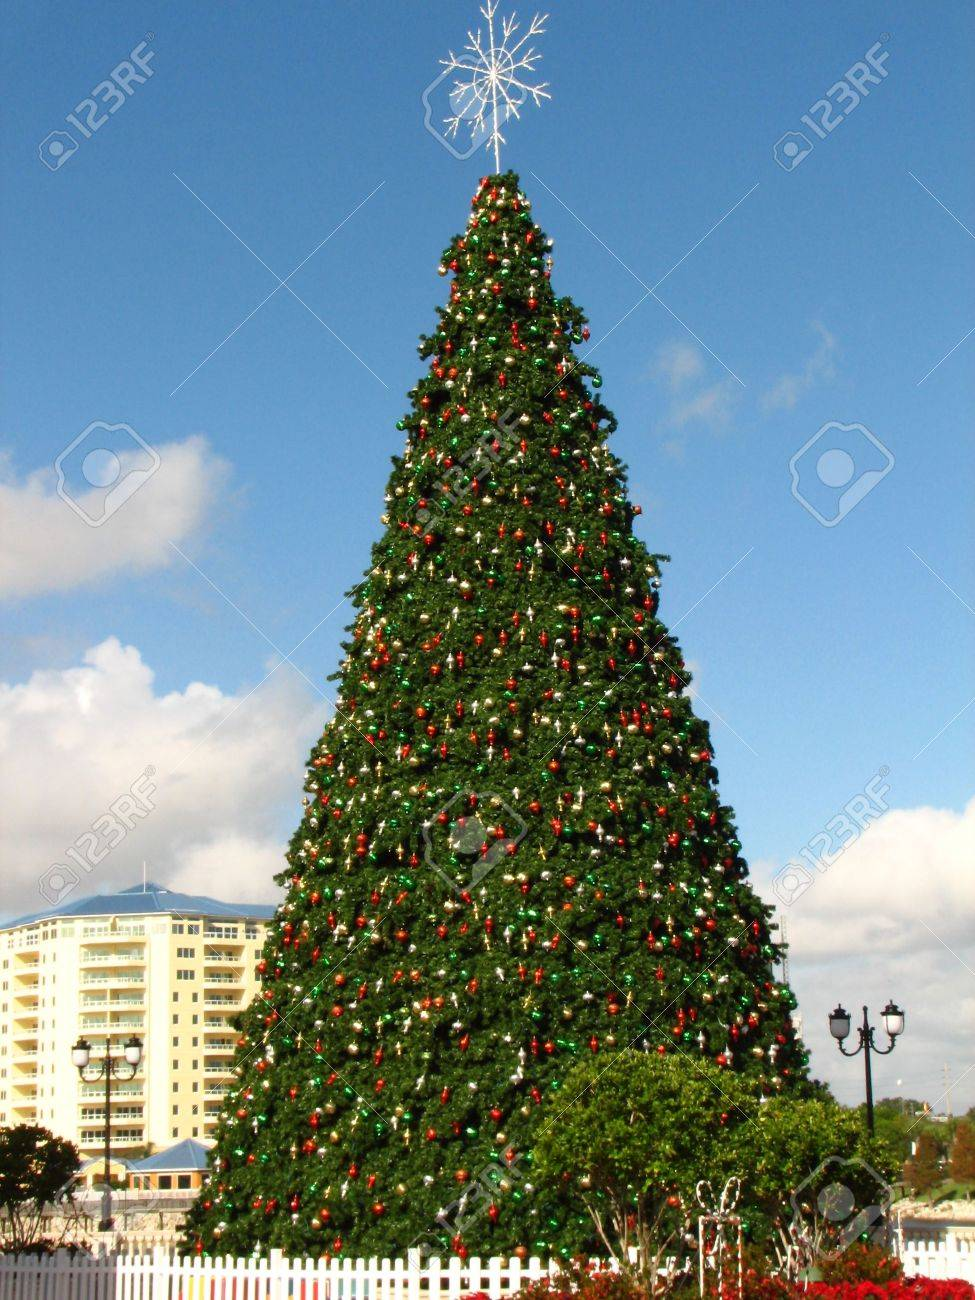 Florida christmas ornament - Shot Of A Giant Christmas Tree At Cranes Roost Park In Altamonte Springs Florida